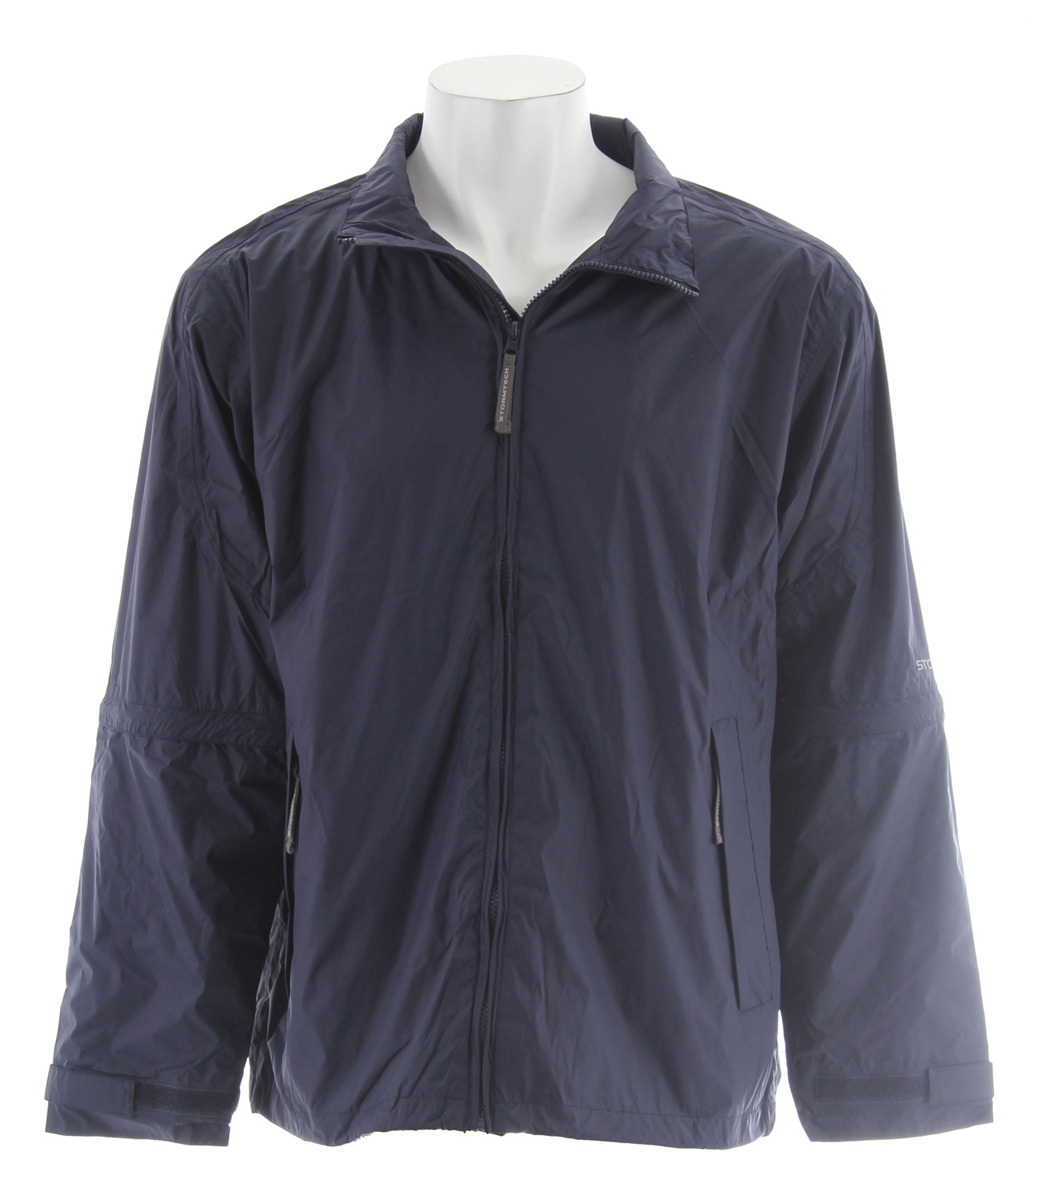 Entertainment Stormtech Nautilus Storm Jacket Navy/Navy - $23.95